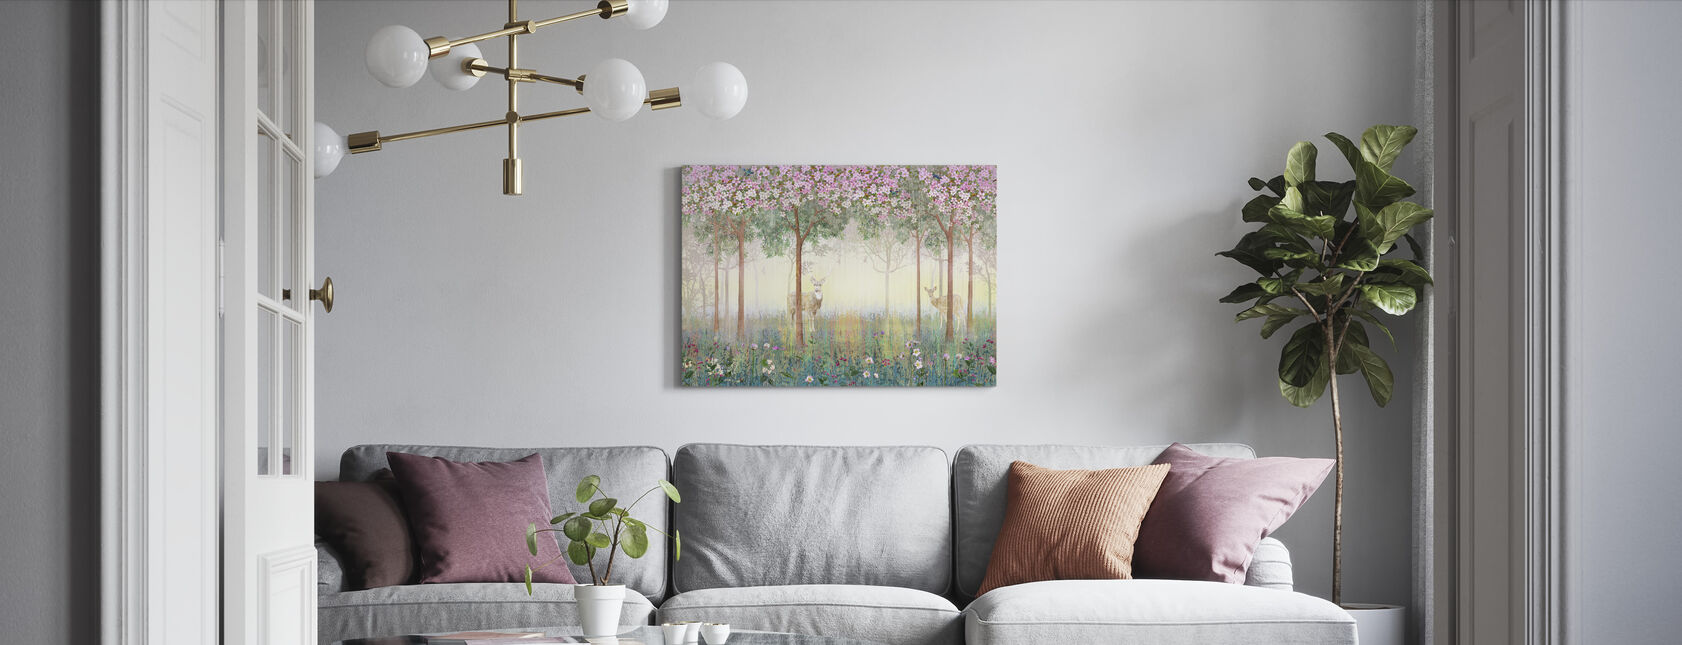 Deers in Dreamy Forest - Canvas print - Living Room